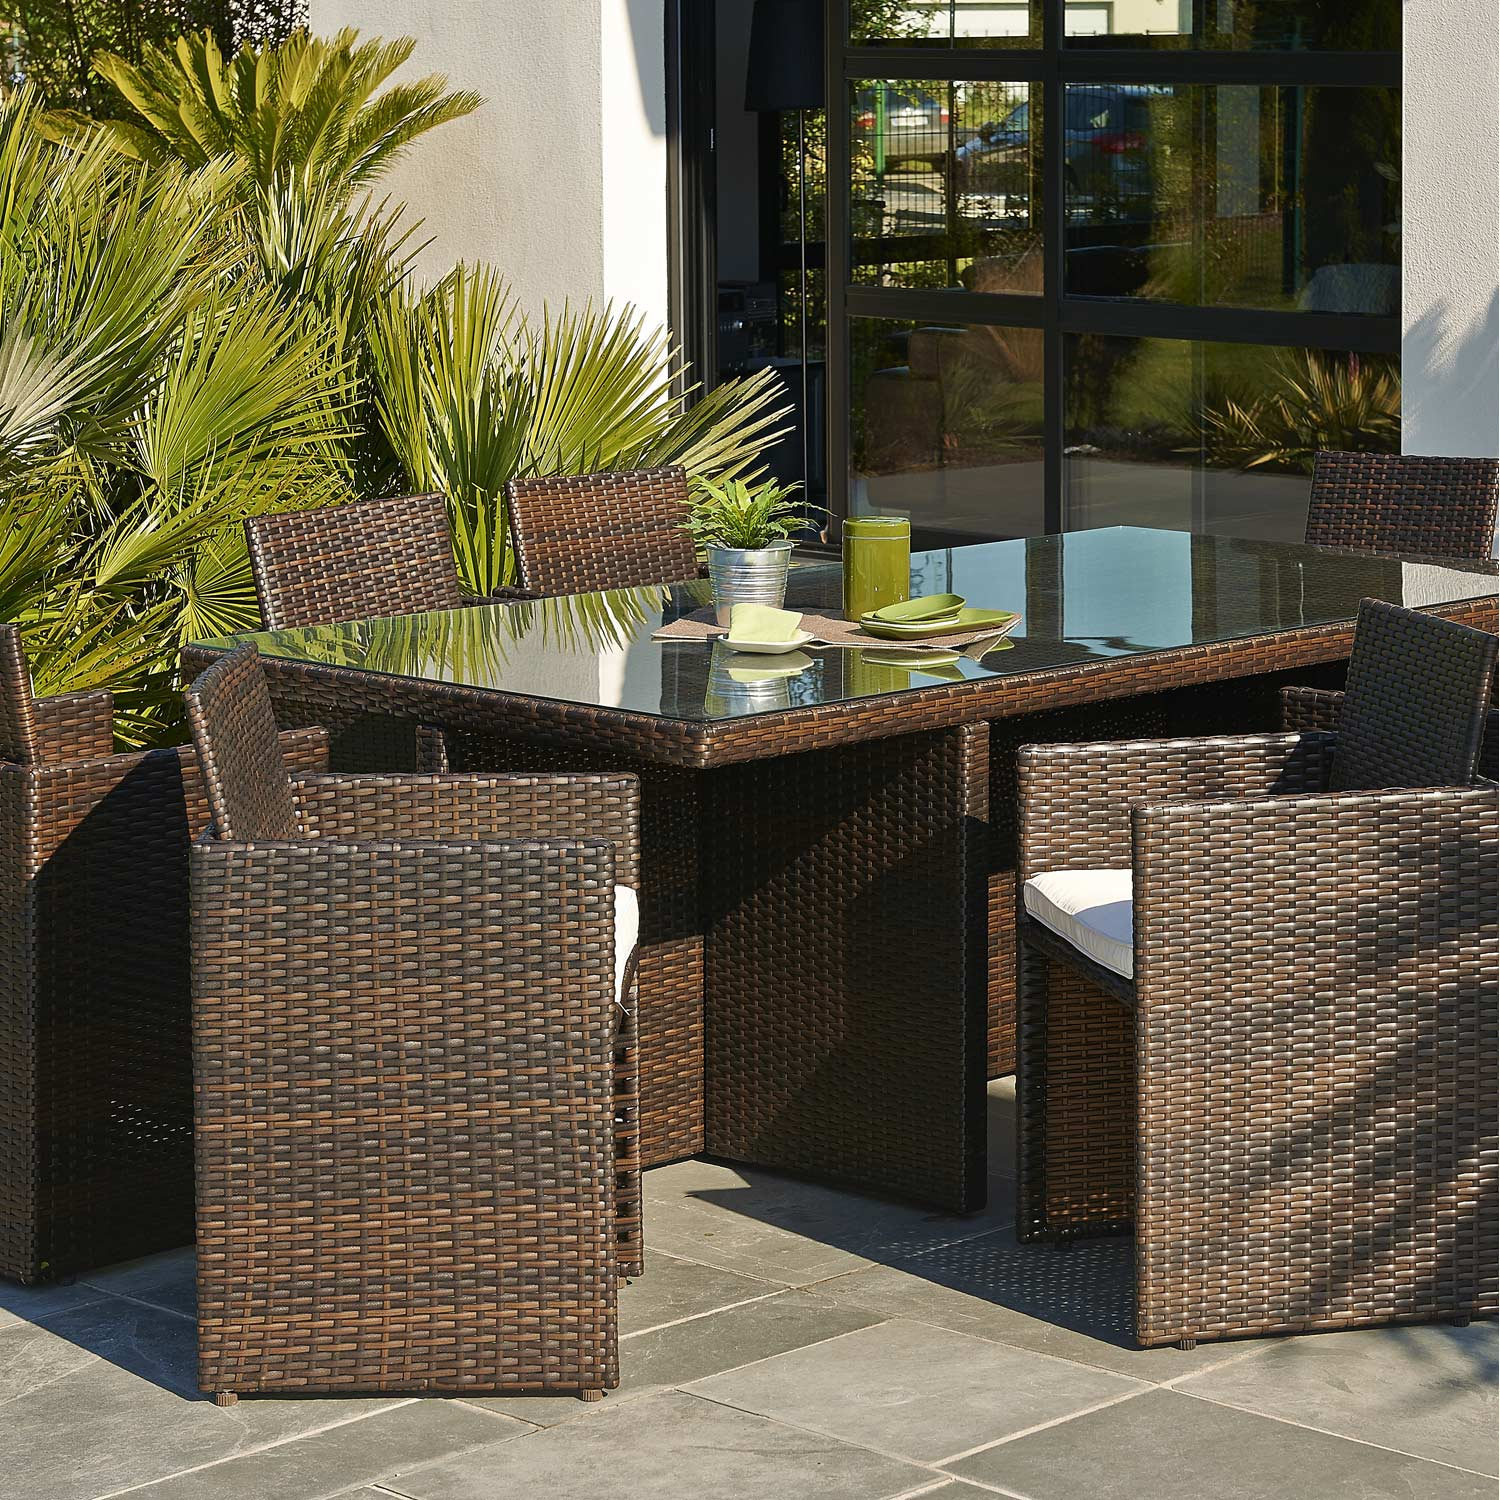 Salon de jardin encastrable r sine tress e marron 1 table for Farolas de jardin leroy merlin